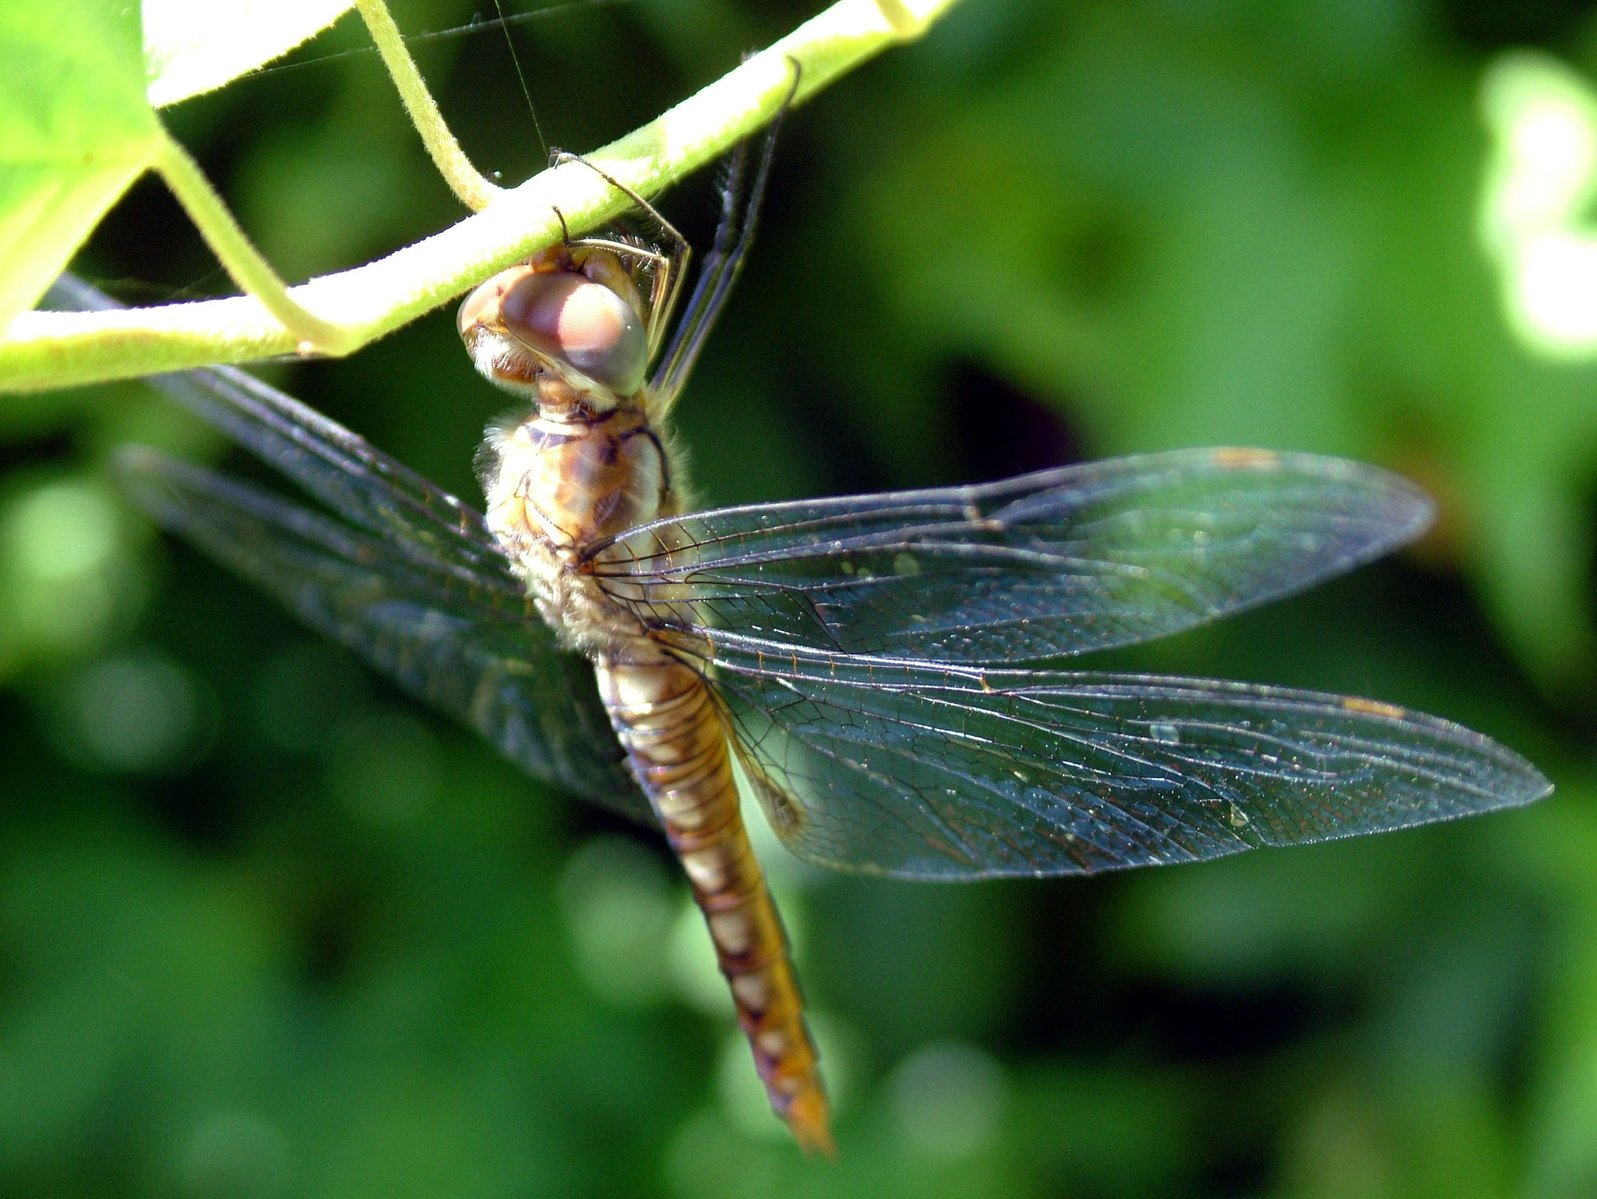 Free Dragonfly Sleeping 2 Stock Photo - FreeImages.com